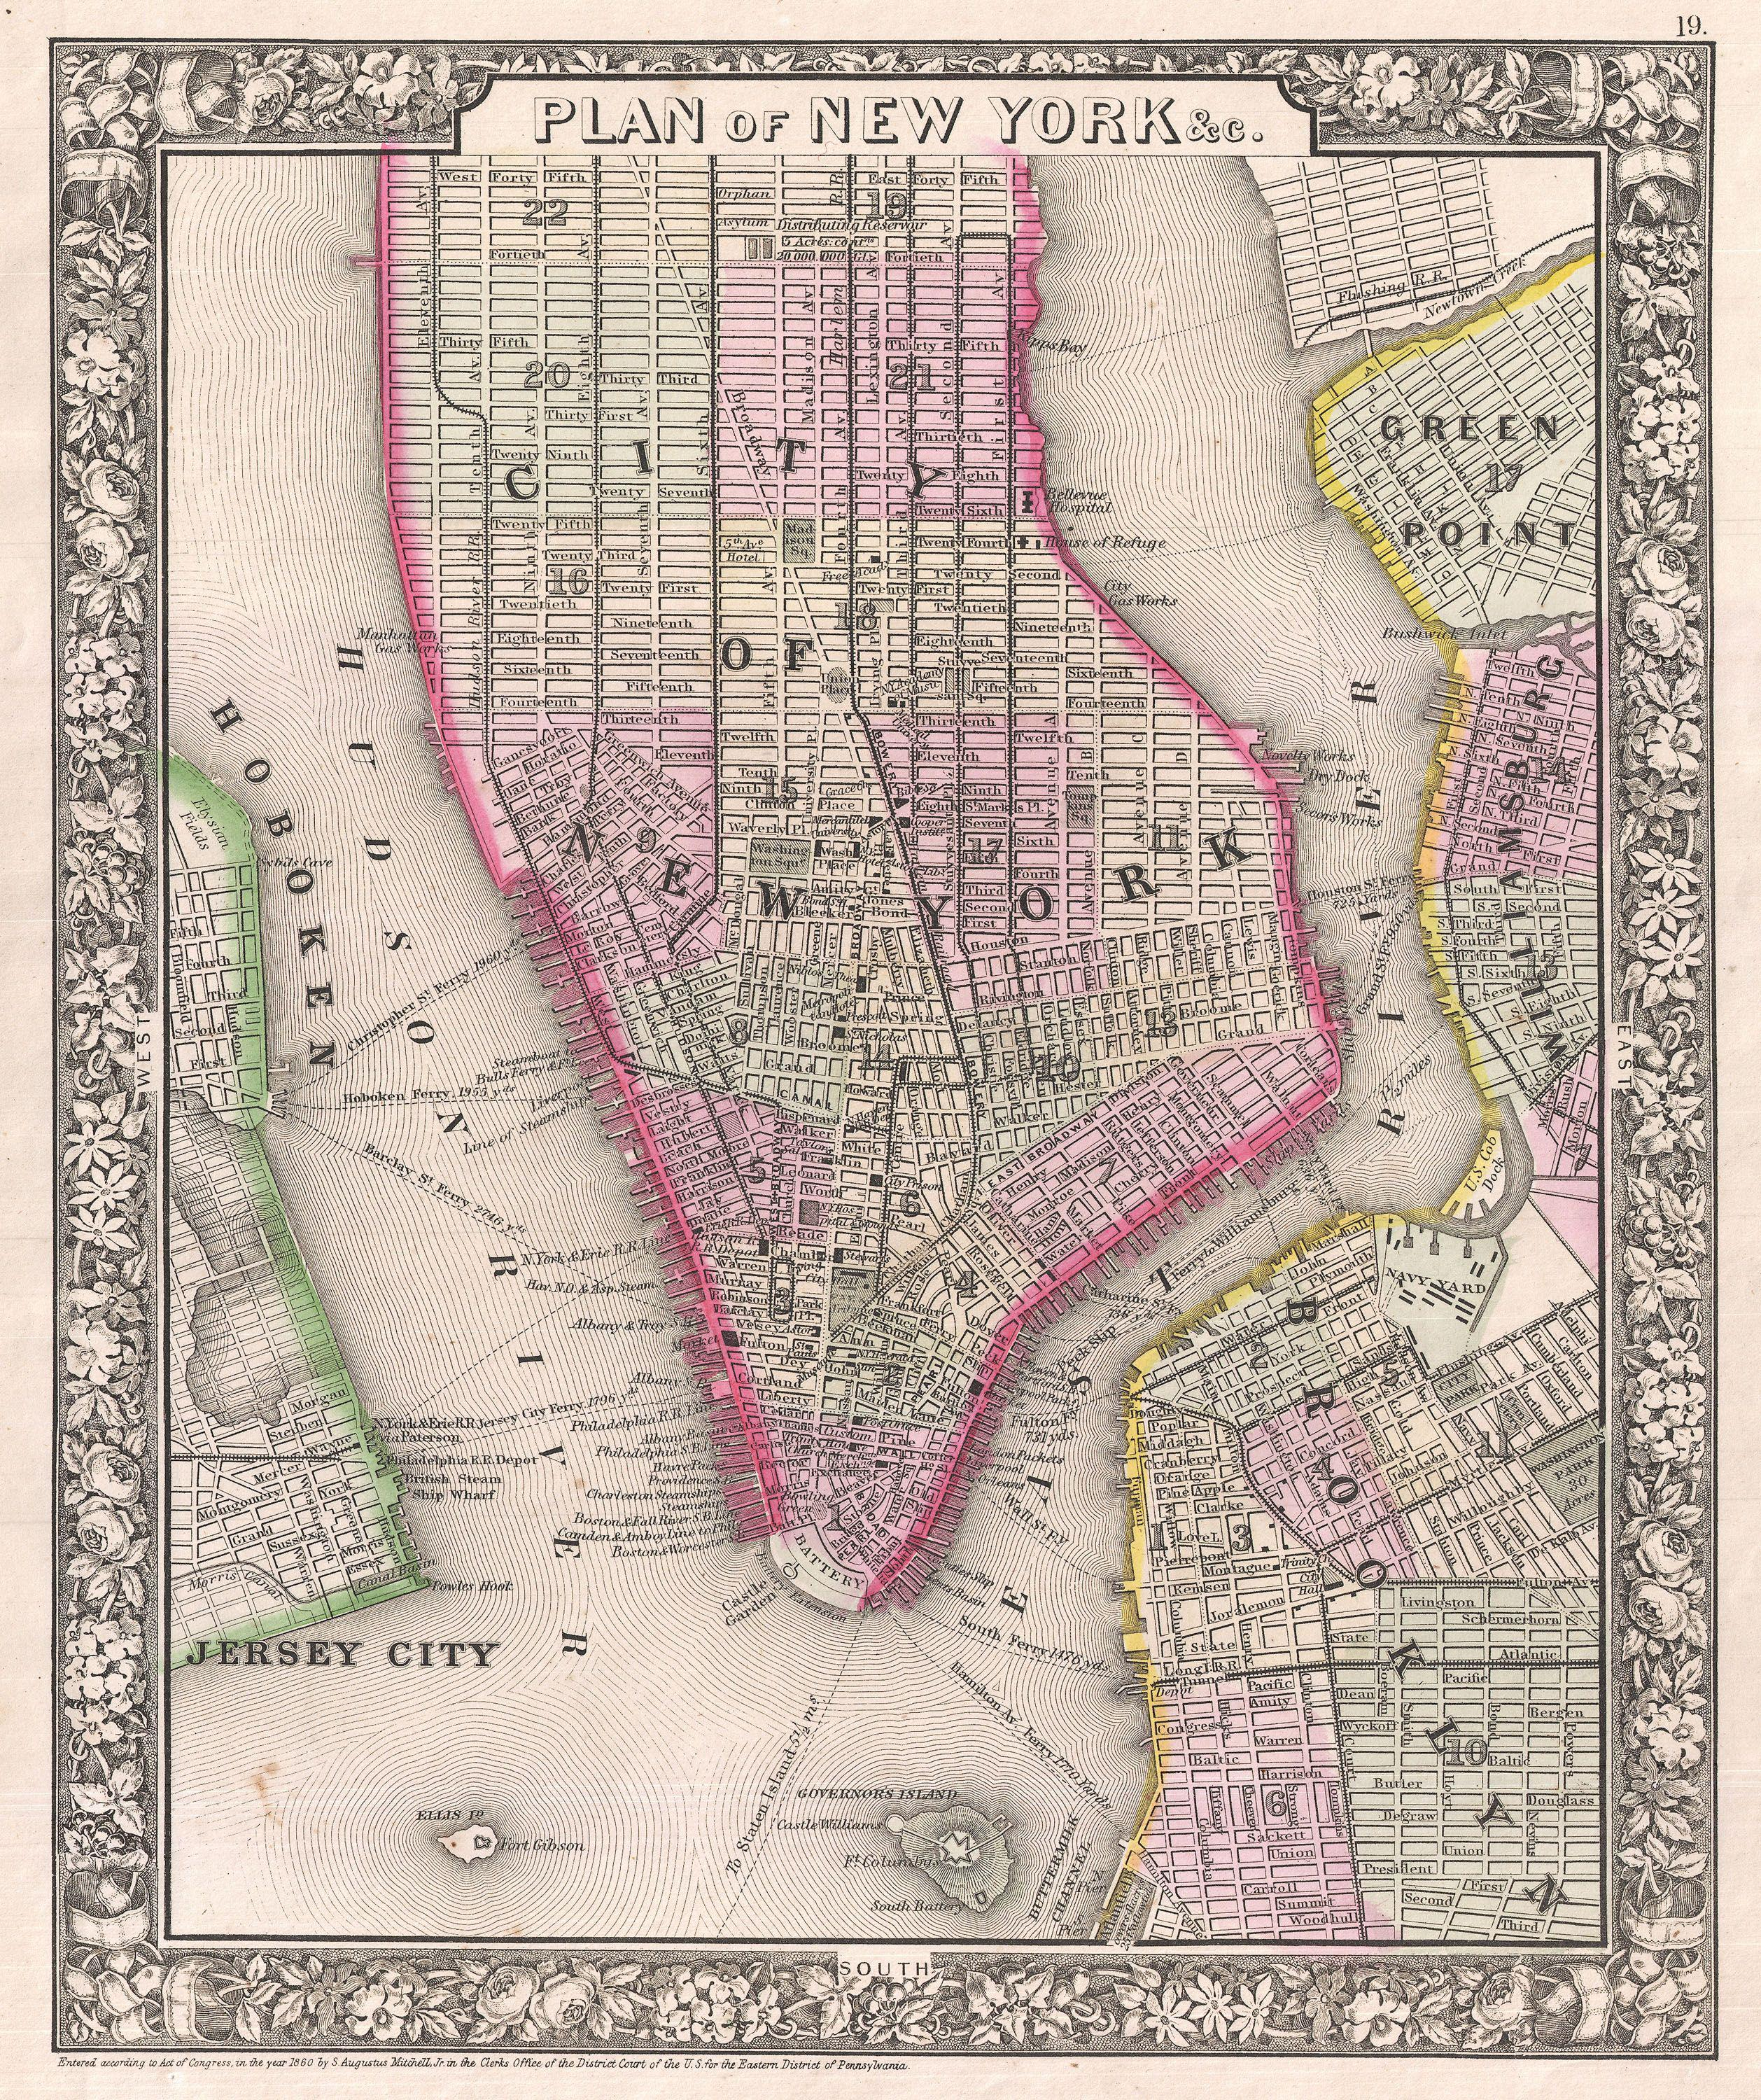 map of new york city streets with File 1866 Mitchell Map Of New York City And Brooklyn   Geographicus   Newyorkcity Mitchell 1866 on Map moreover Guia De Viaje De Nueva York Midtown Empire State moreover 405354995 also Stol Brooklyn Vit as well French Quarter Map.